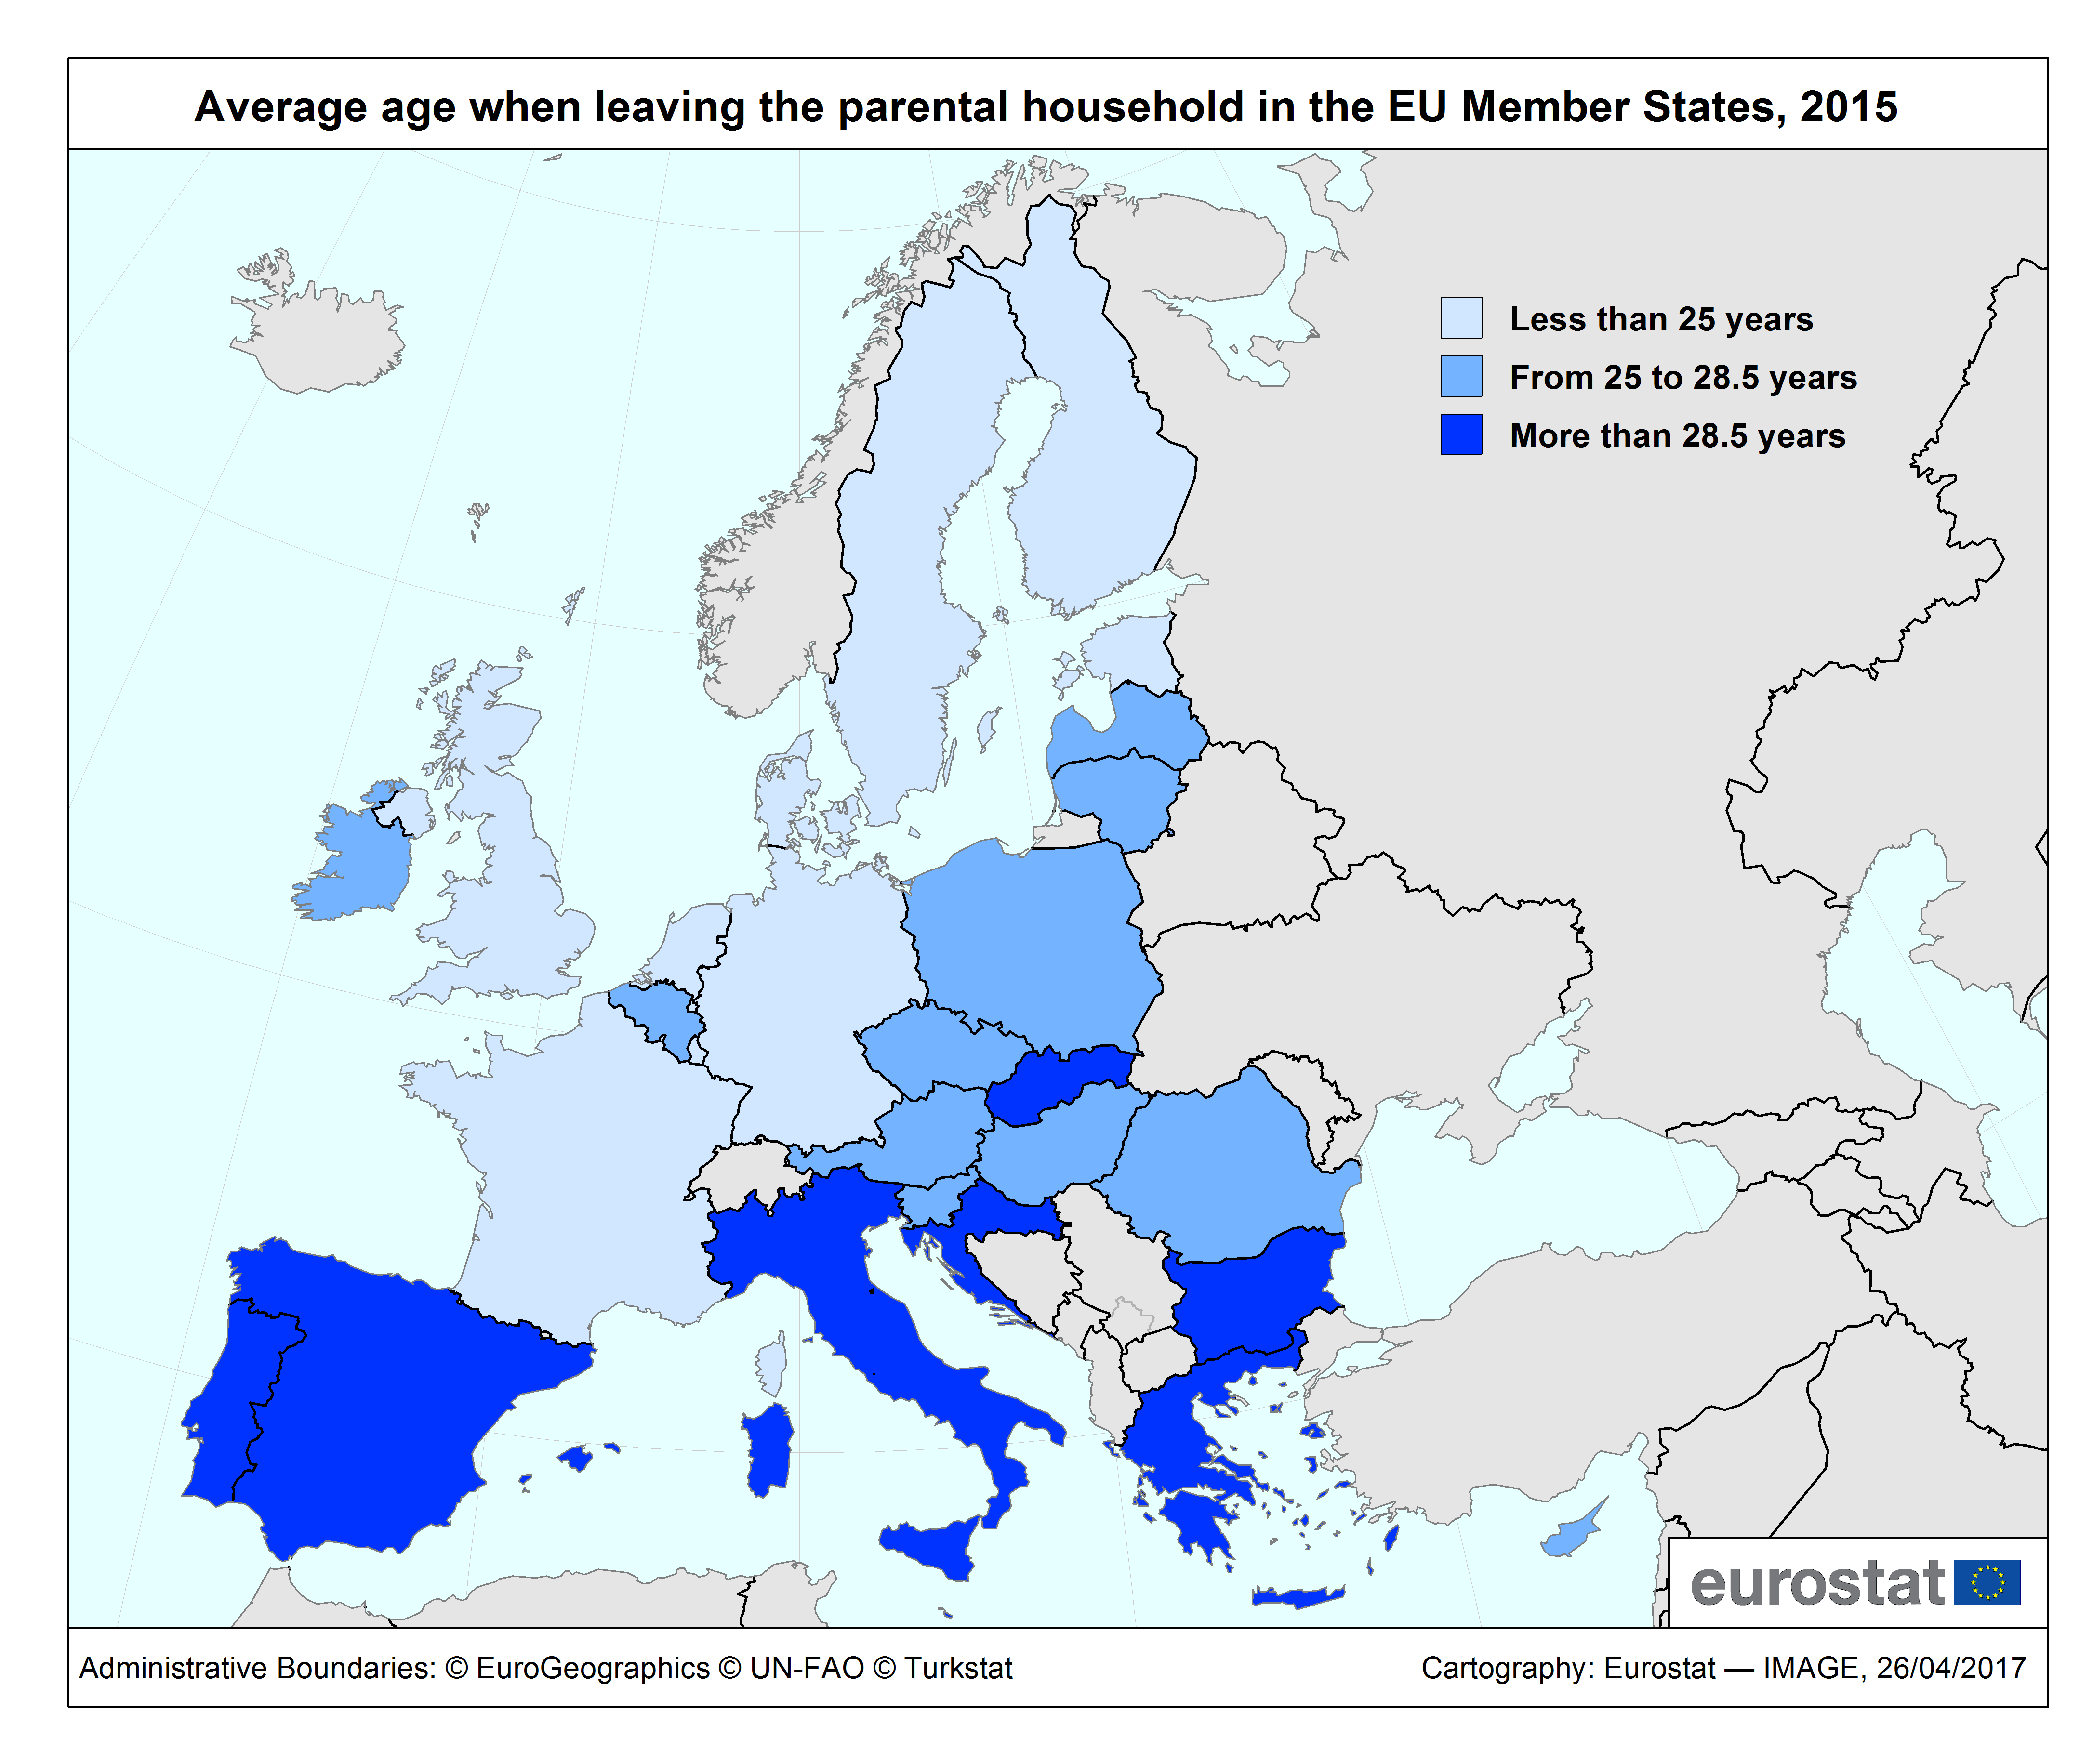 Map: Average age when leaving the parental household in the EU Member States, 2015